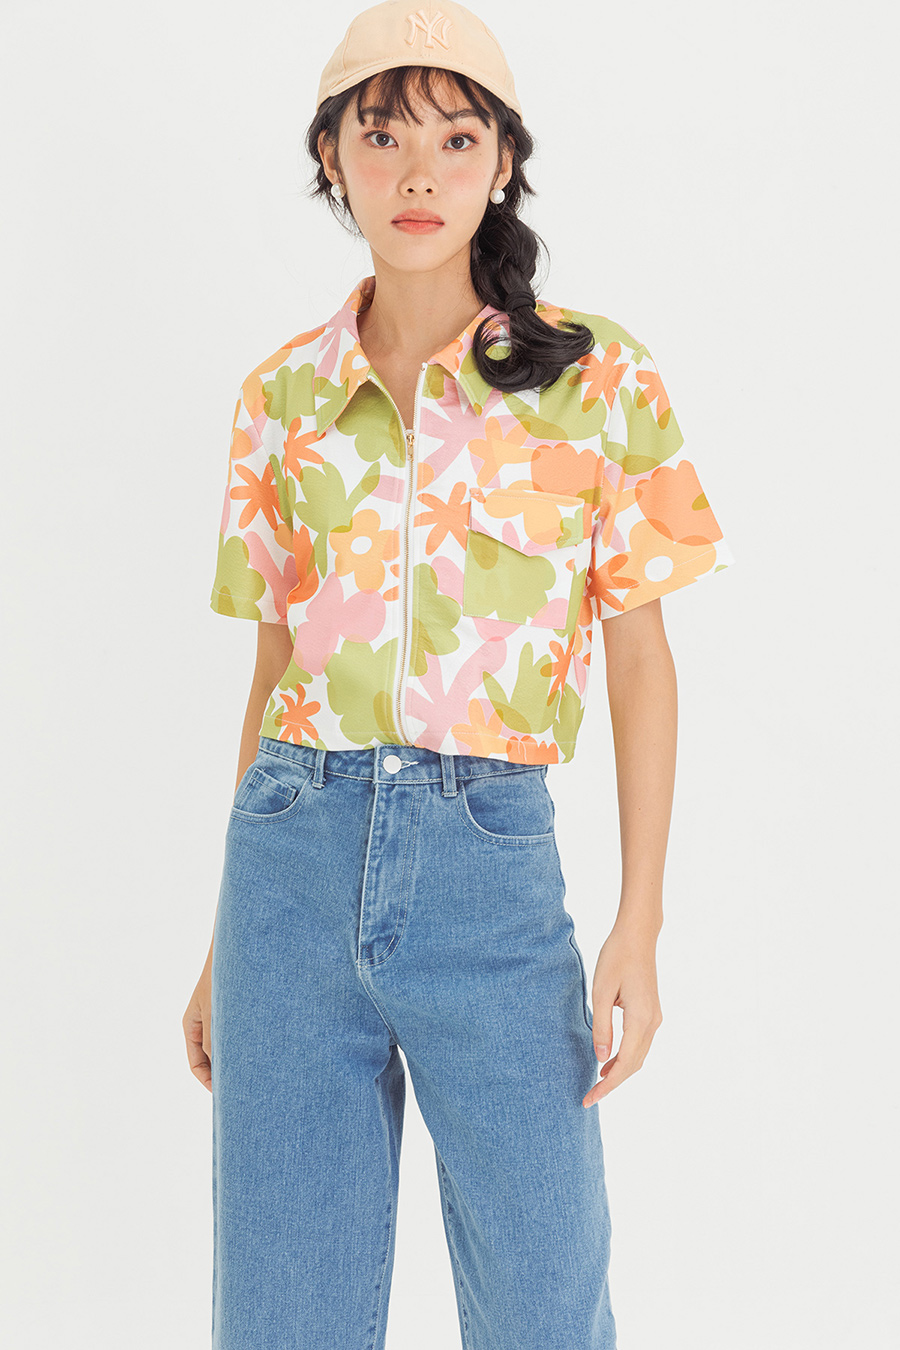 NOELIA TOP - SUNFLORA [BY MODPARADE]